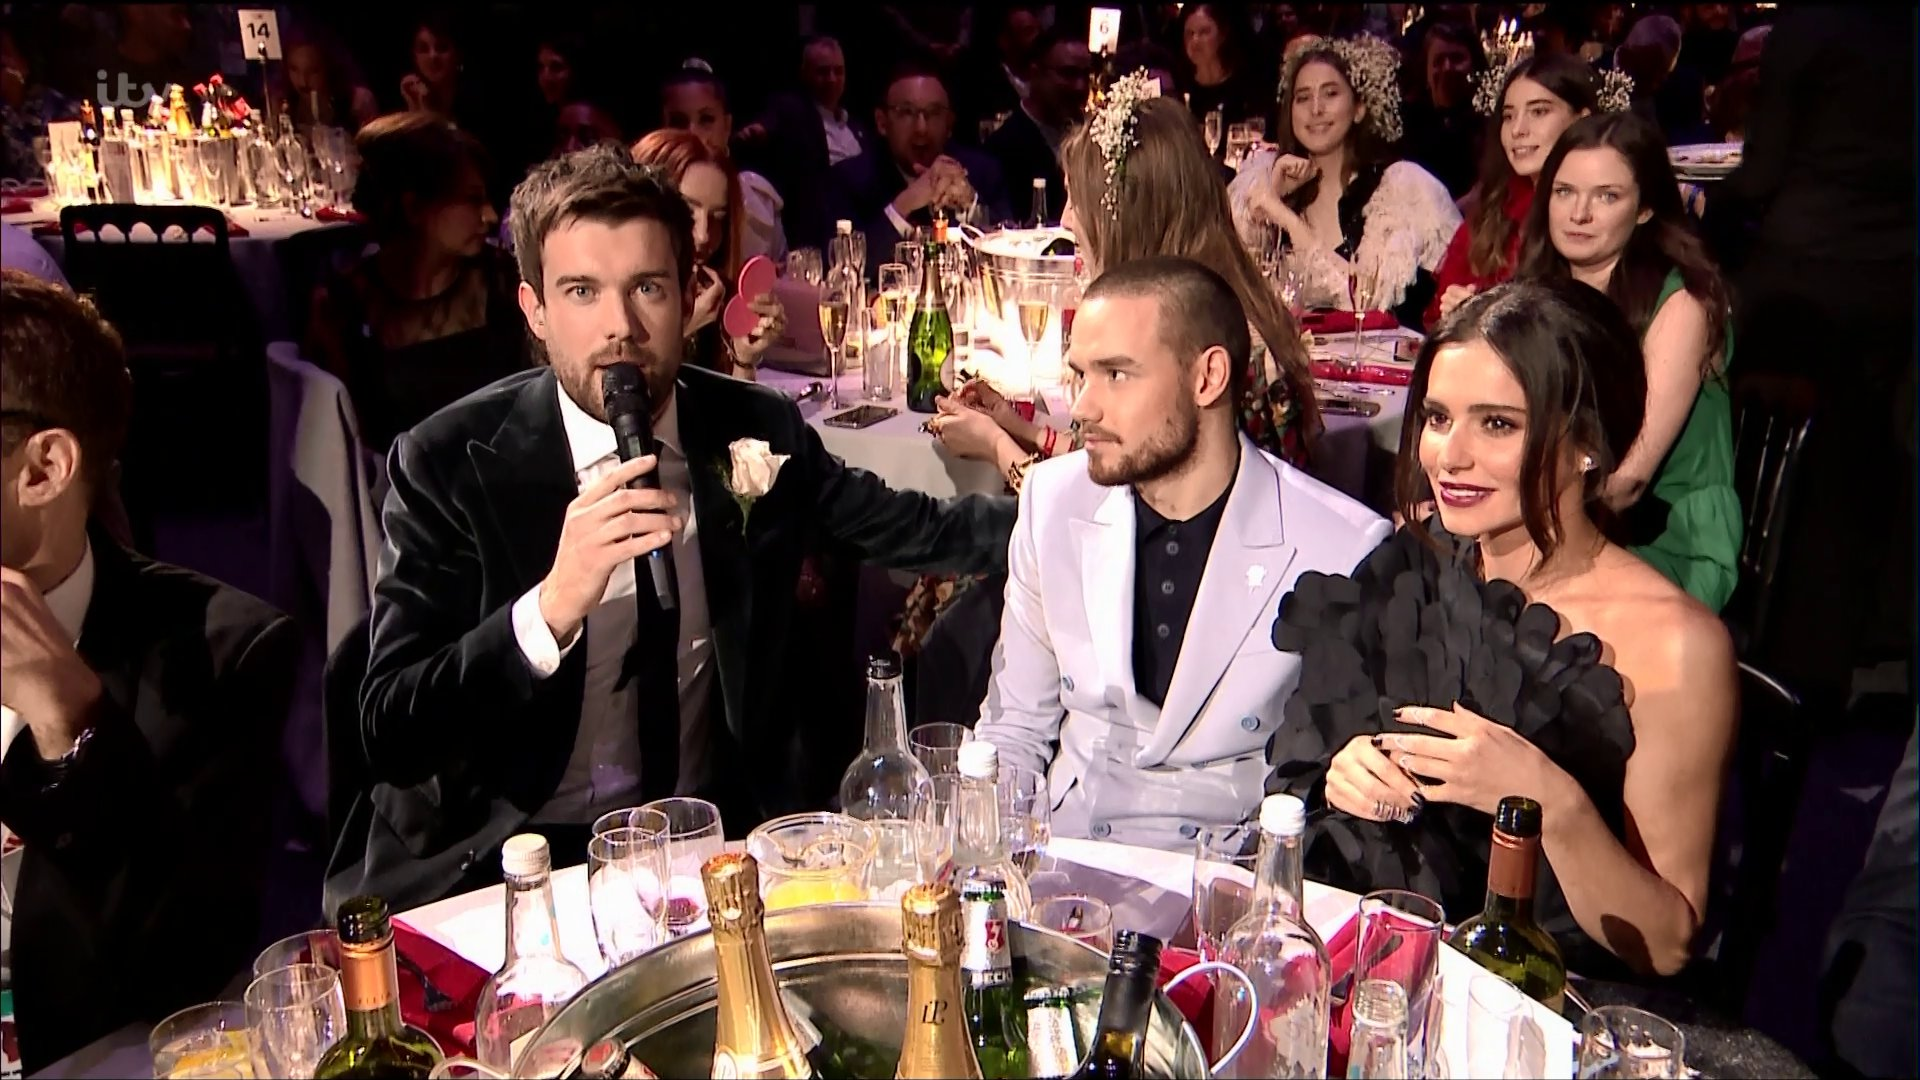 Cheryl uses the Brit Awards to tell the UK public her 'safe word in the bedroom' with Liam Payne